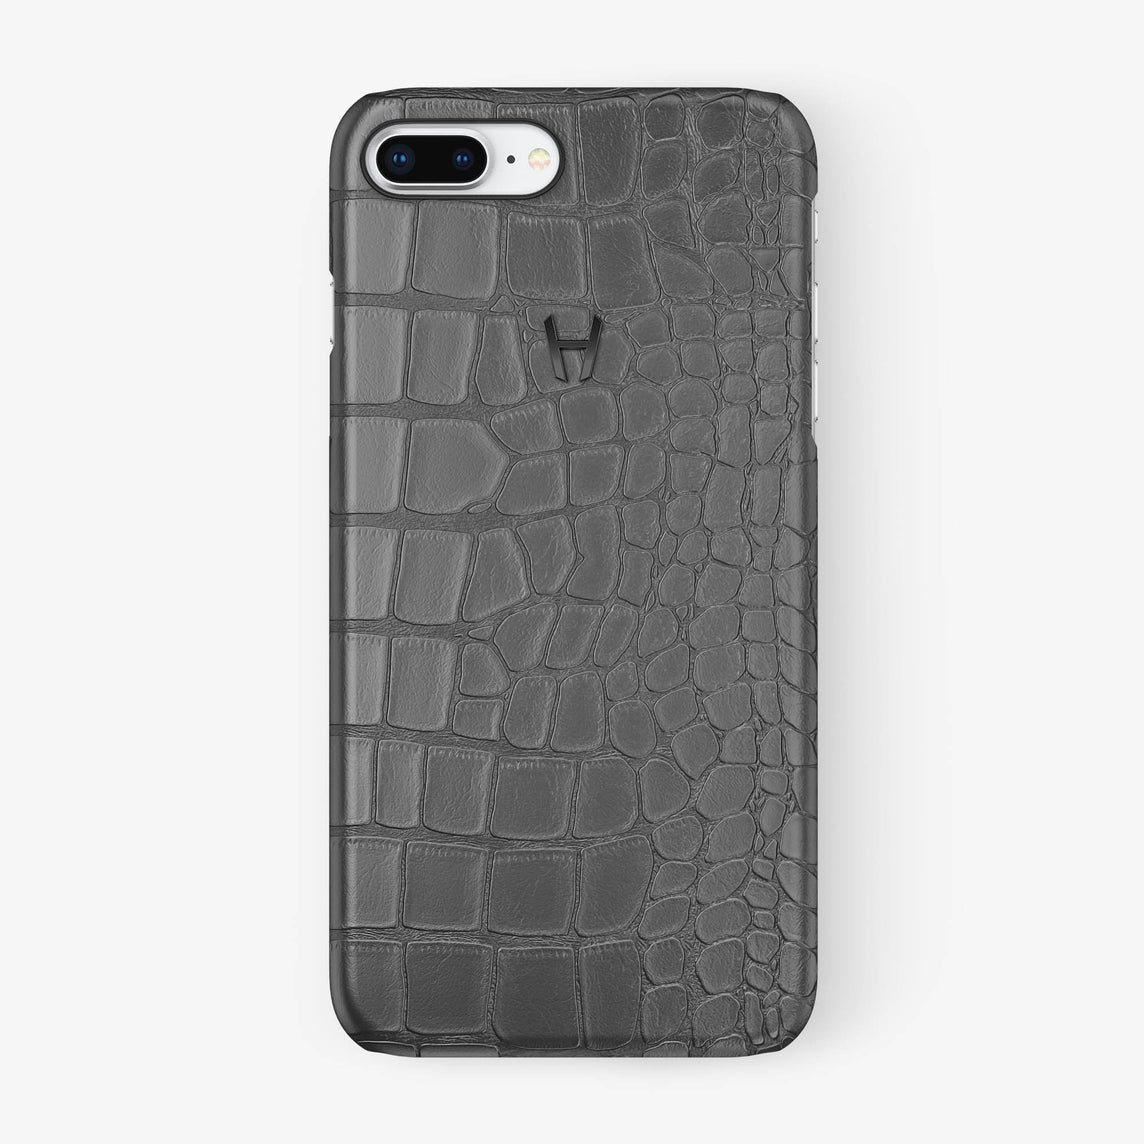 Alligator [iPhone Case] [model:iphone-7p-8p-case] [colour:grey] [finishing:black] - Hadoro